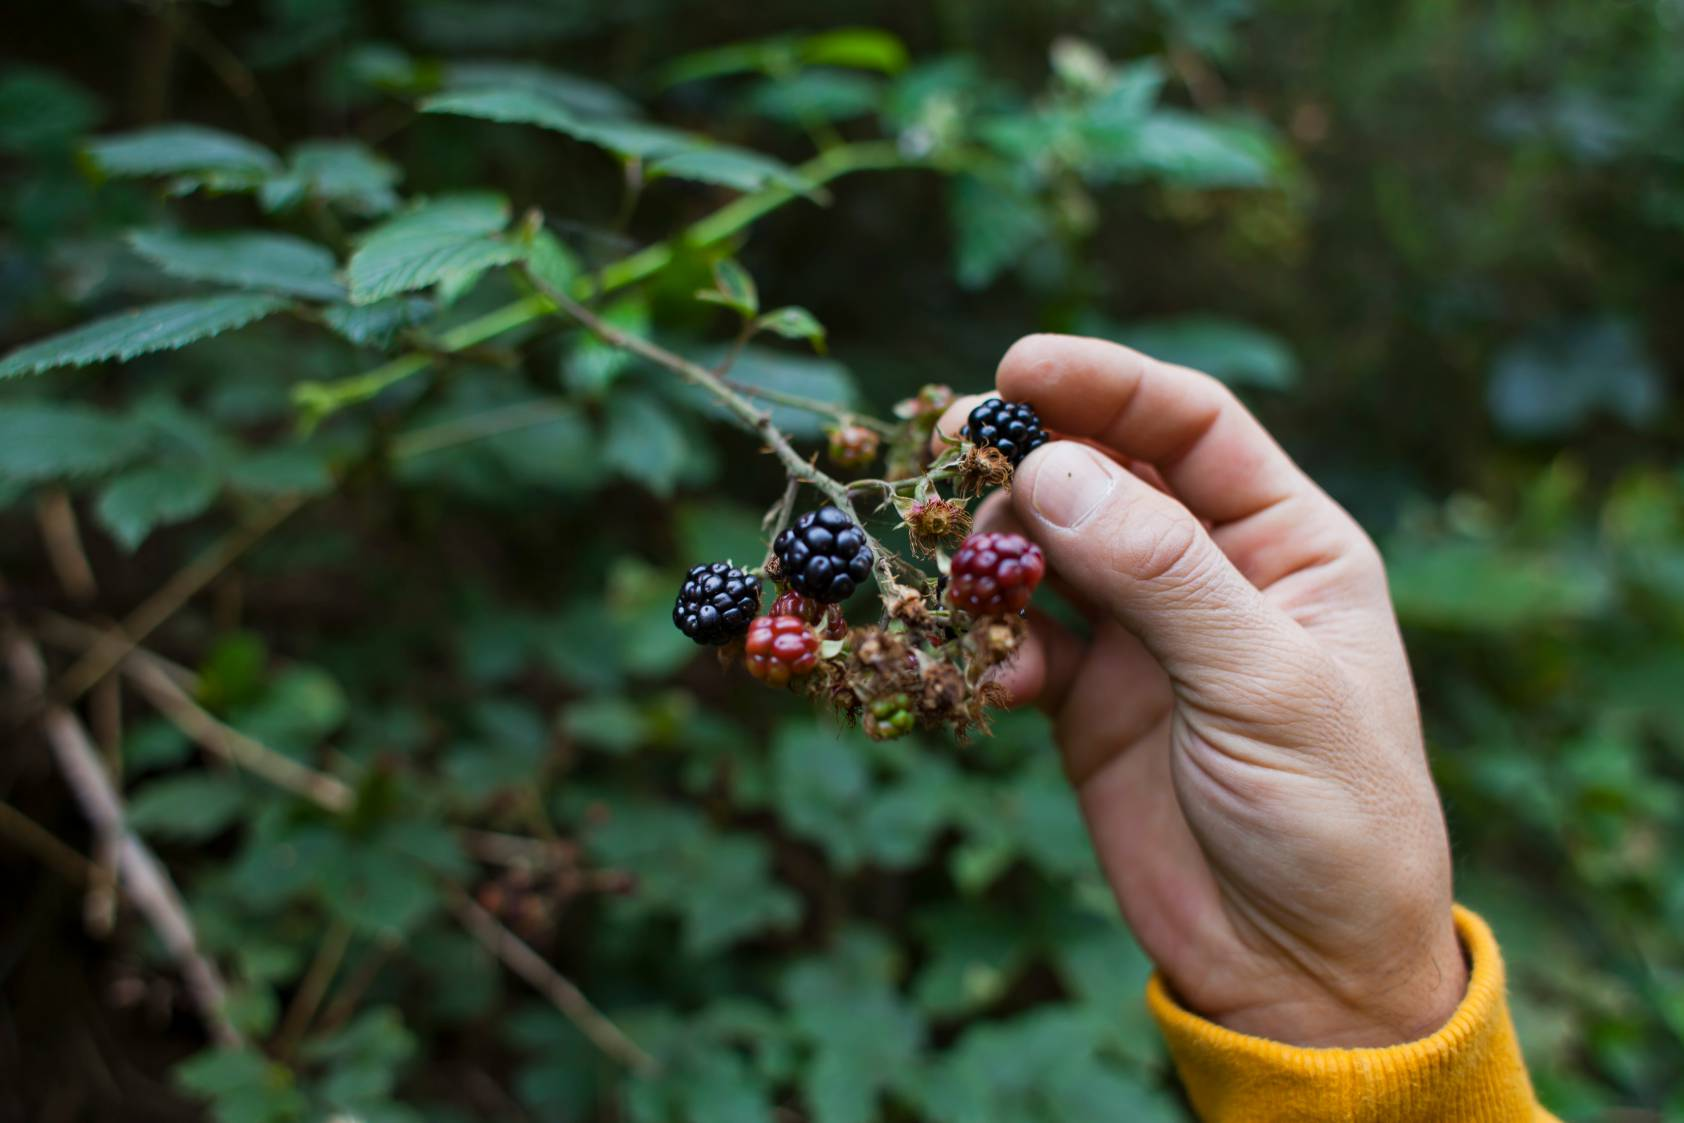 Person in a yellow shirt holding wild berries with their fingers off a bush